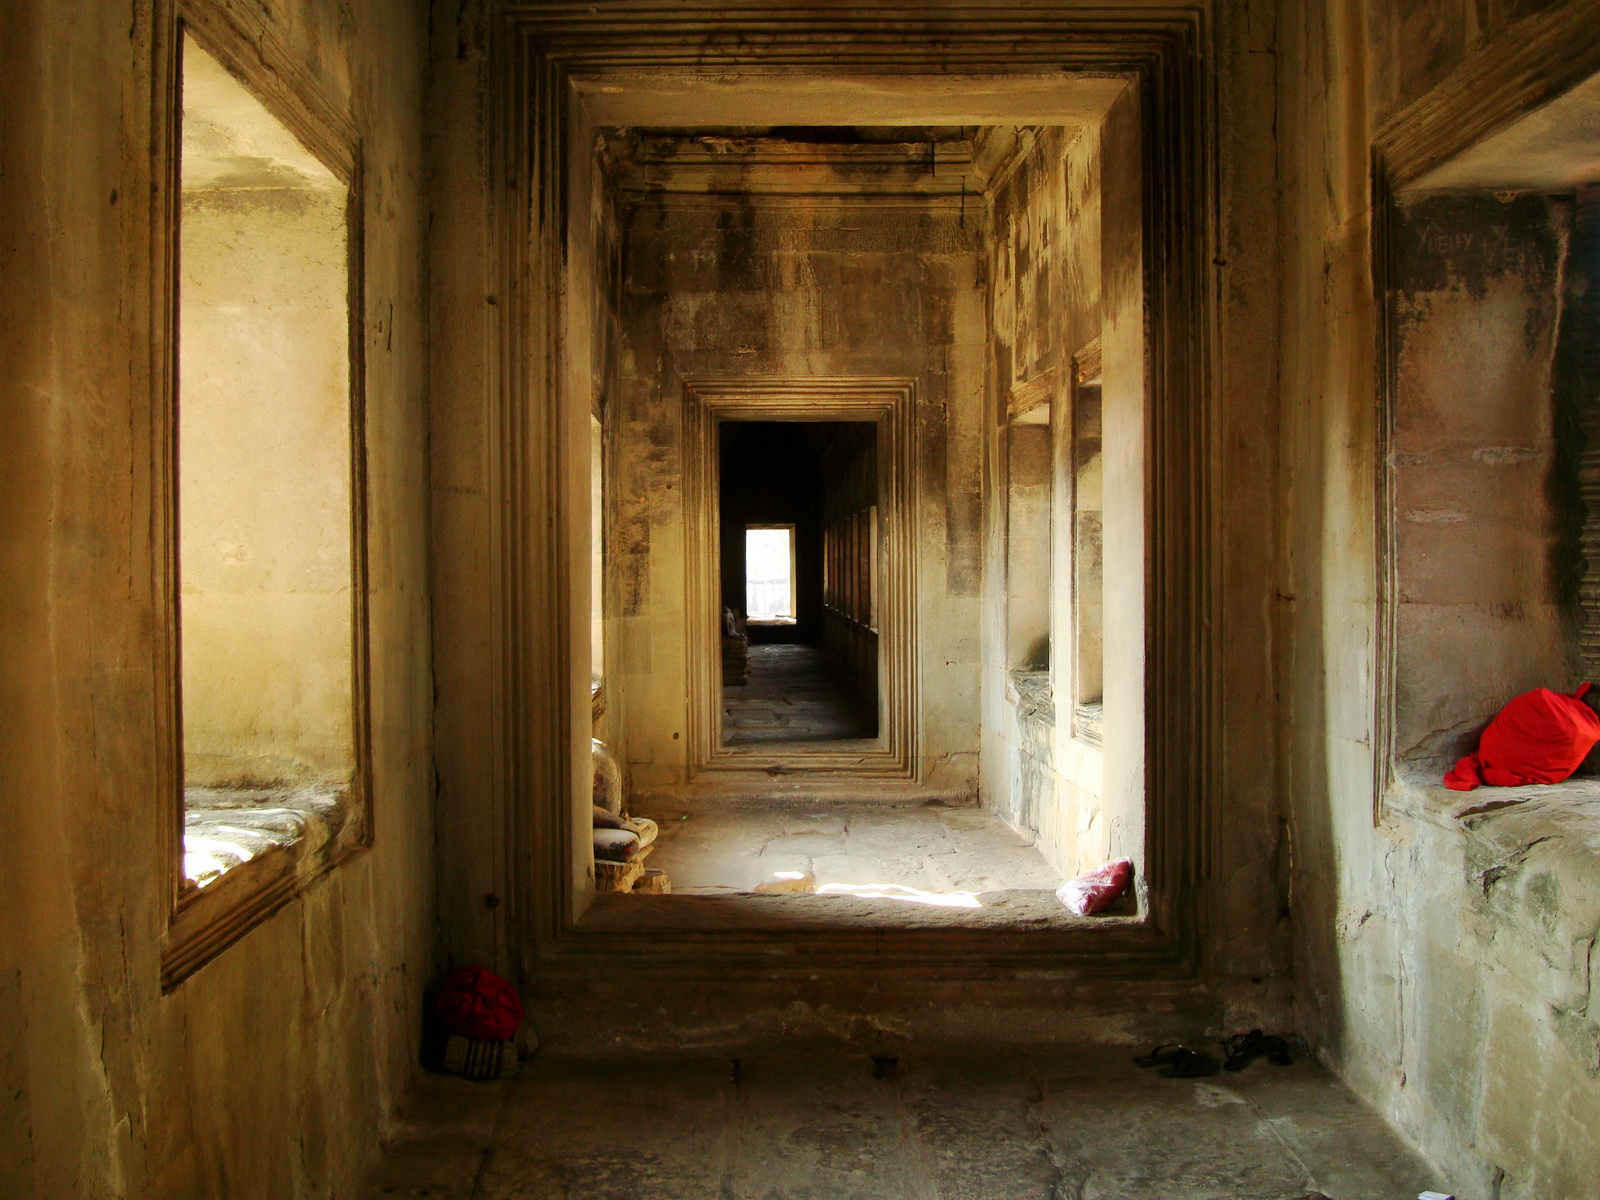 Angkor Wat inner sanctuary gallery columns and passageways 17